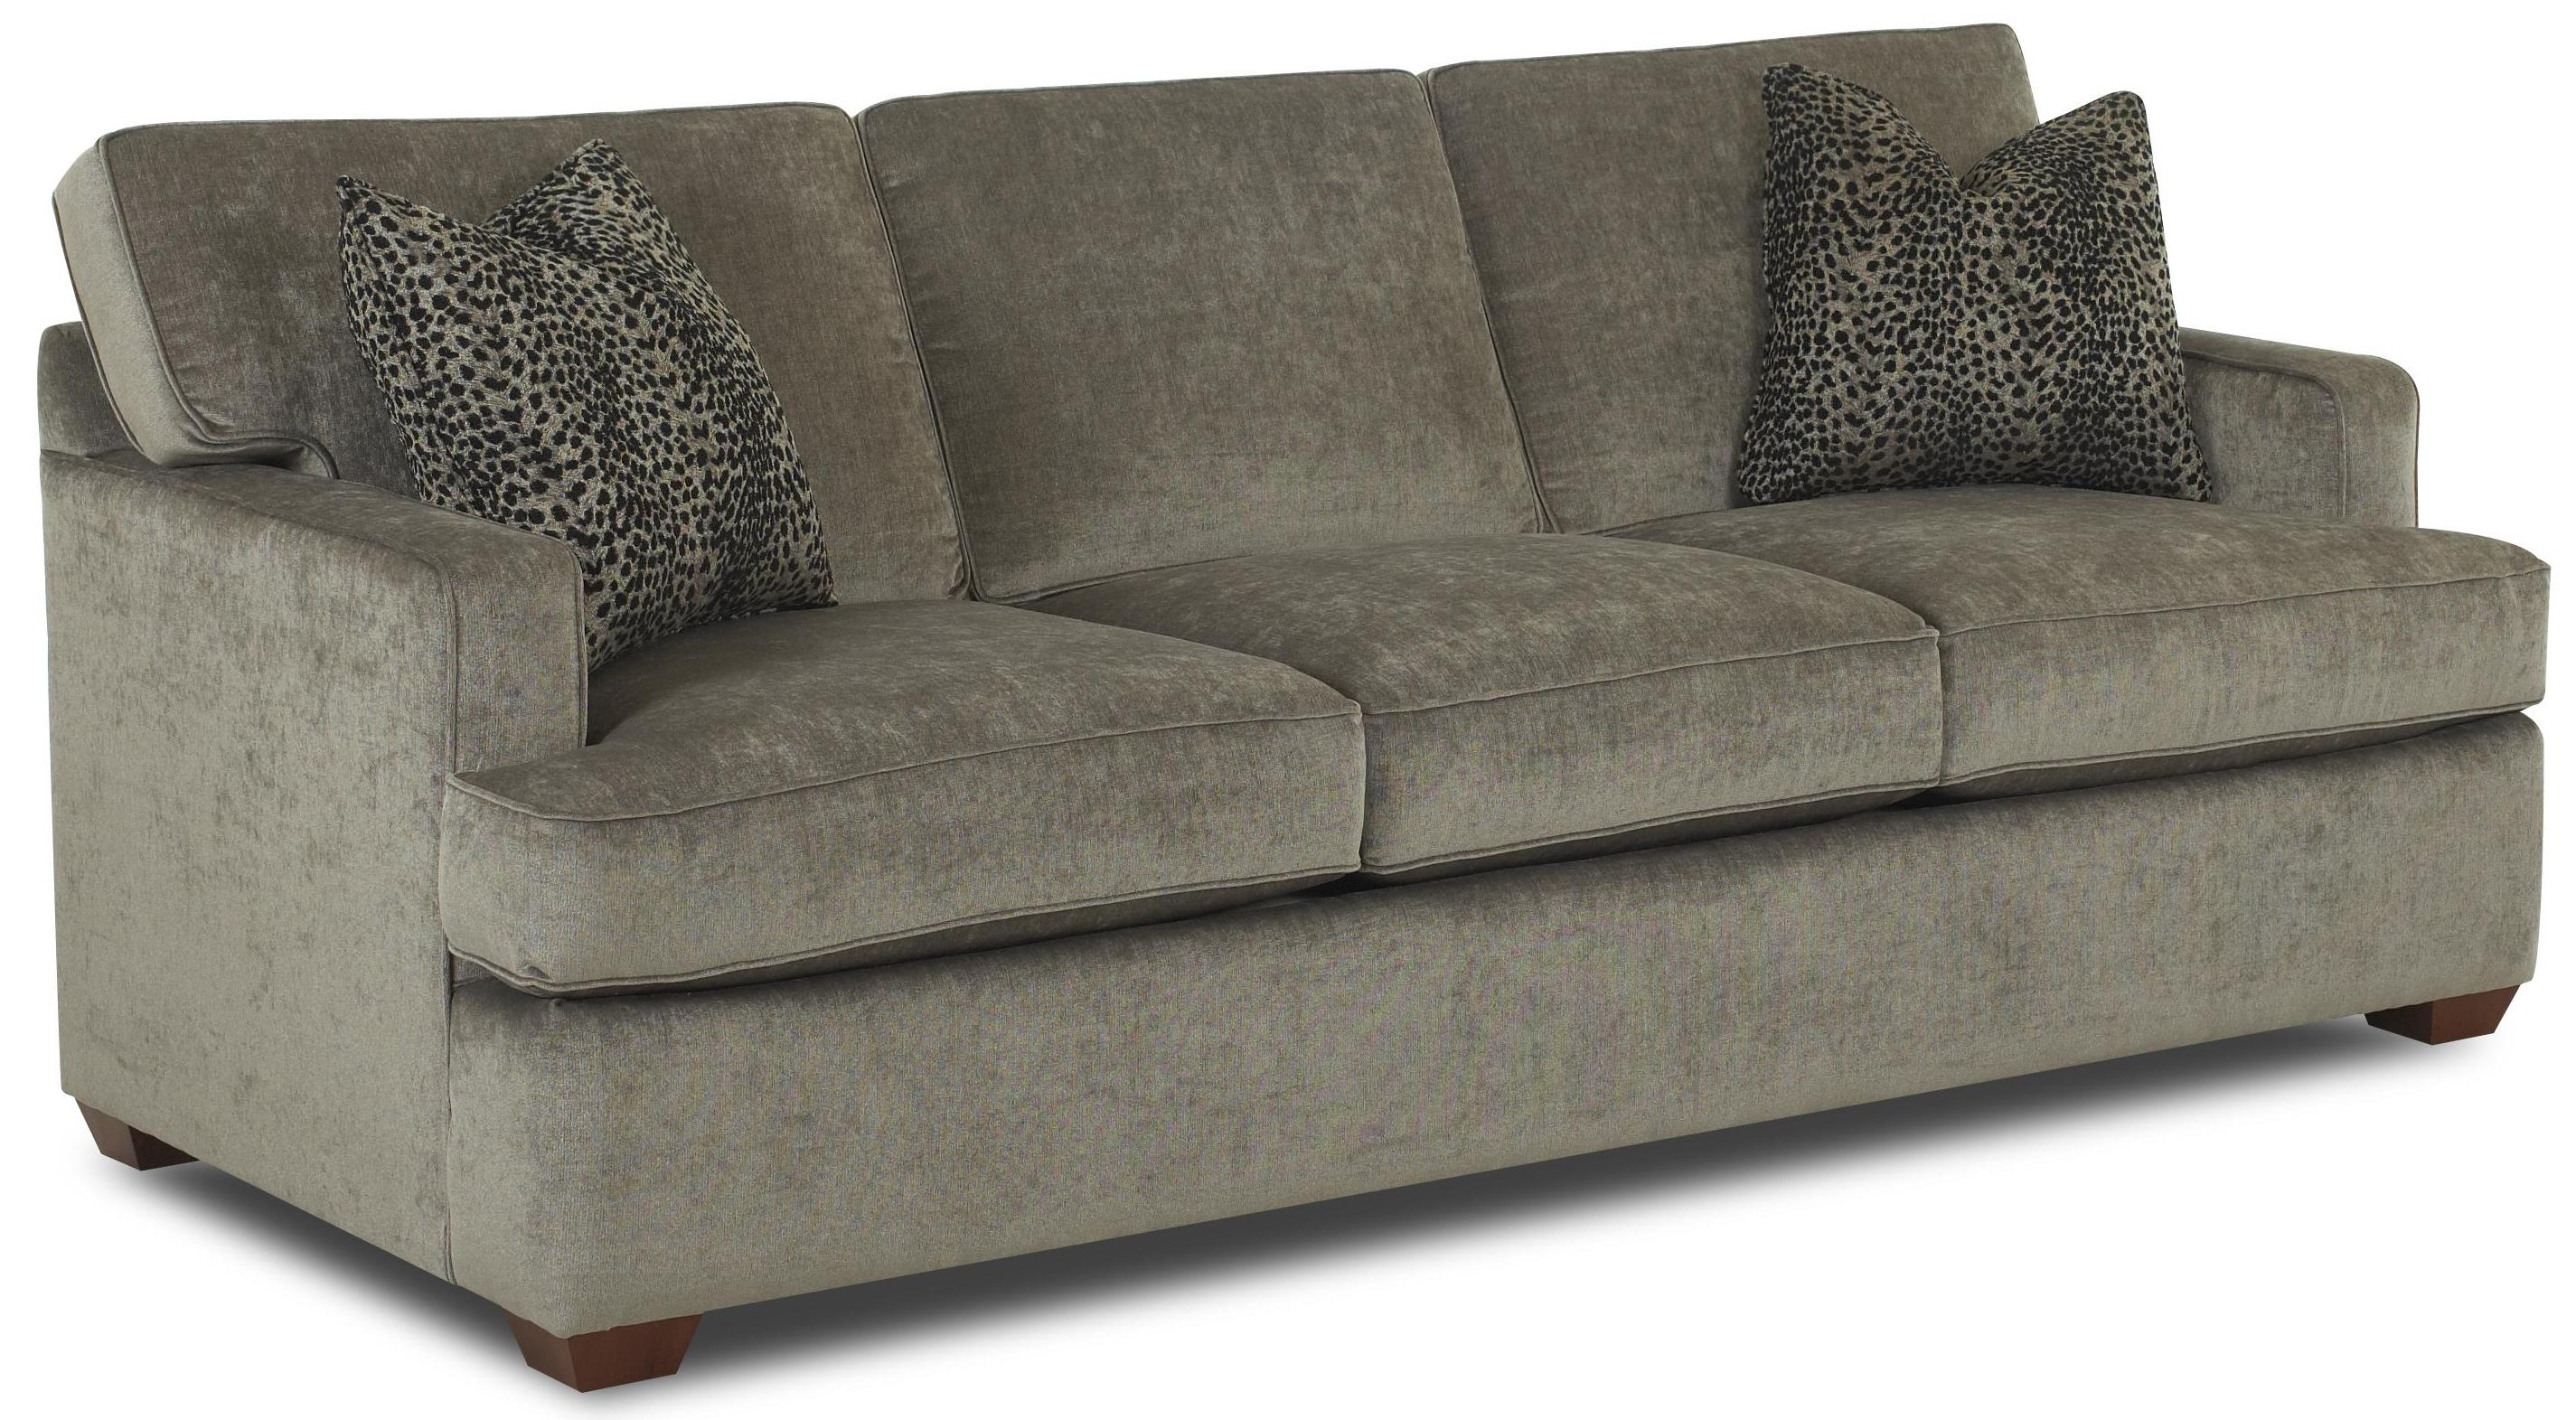 klaussner loomis sectional sofa low price contemporary with track arms